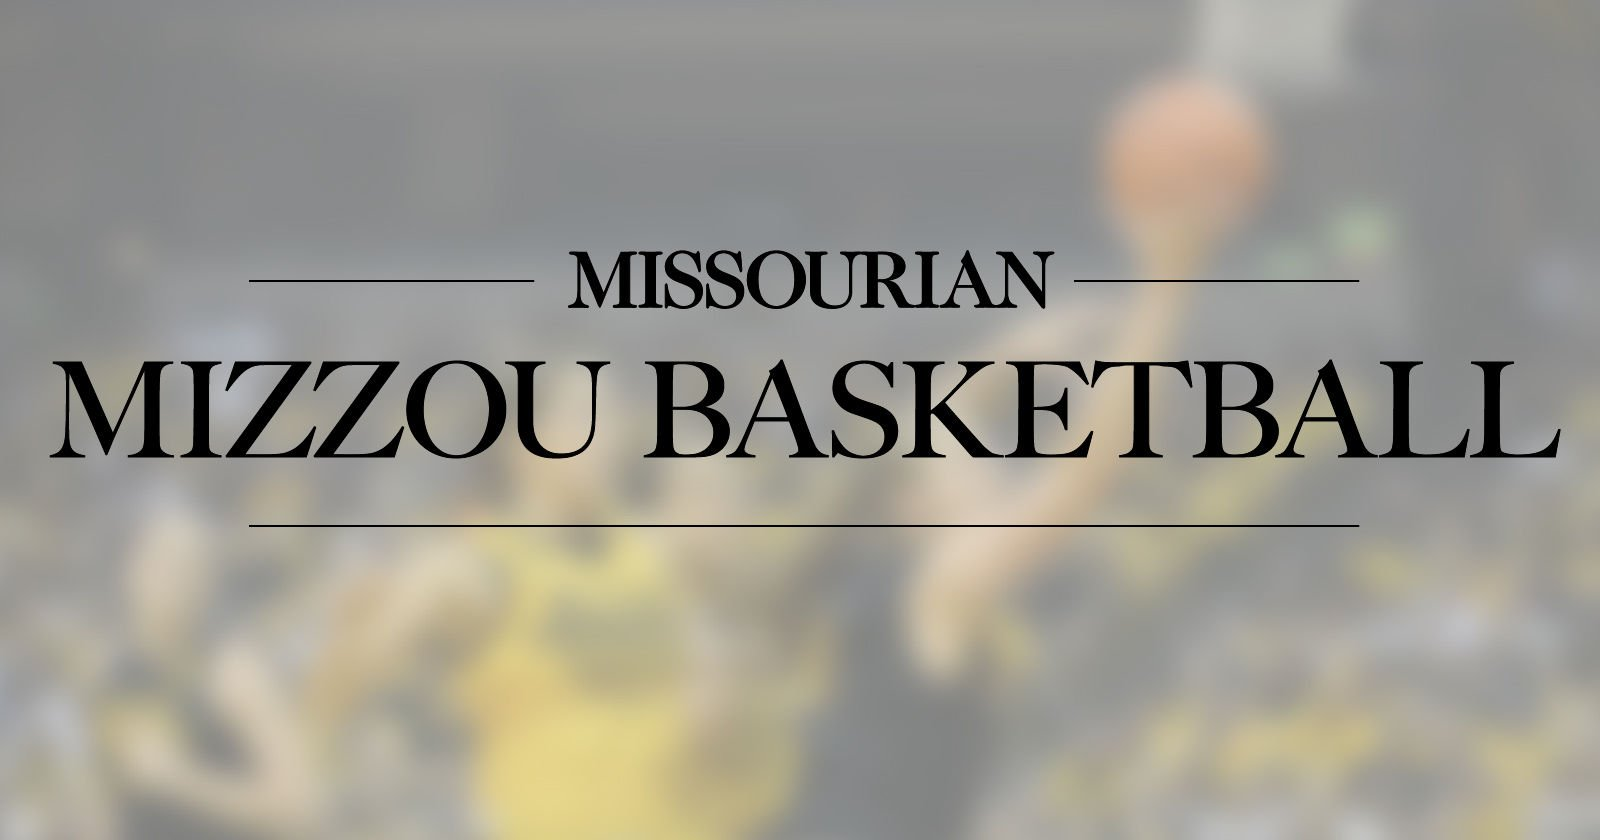 With vaunted freshman class in tow, MU women's basketball enters 'new era'